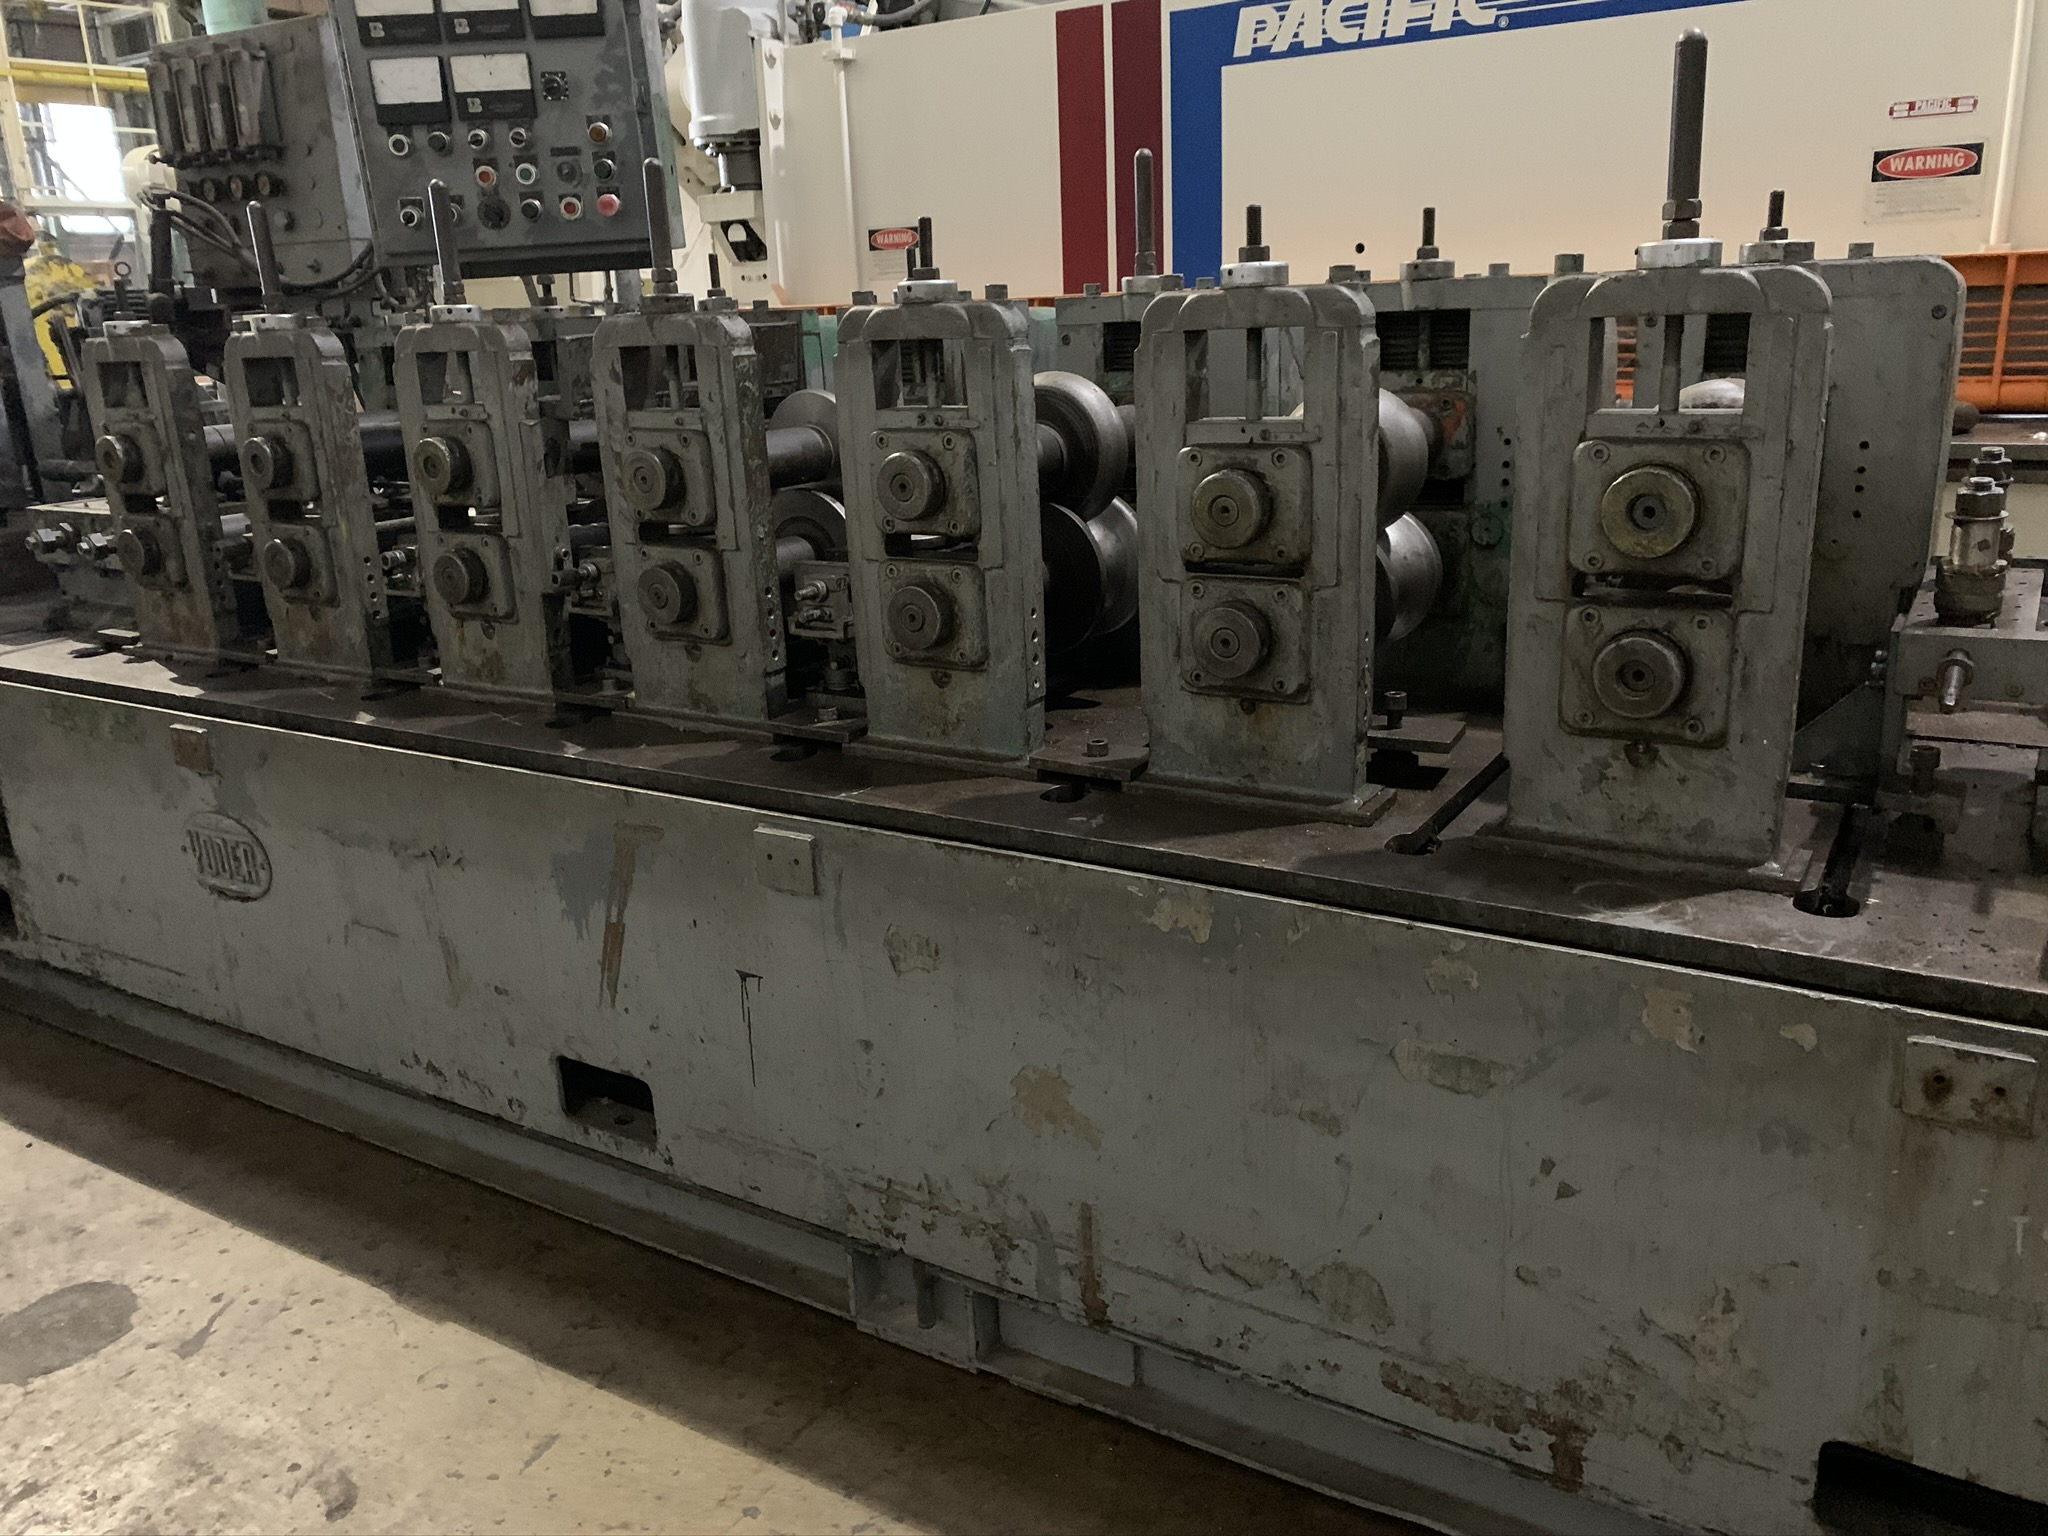 YODER MODEL M2.5 TUBE MILL; S/N C0-1424, 9-STAND 4-BREADKDOWN STANDS, (3) FINISHING STANDS, (2) - Image 5 of 8